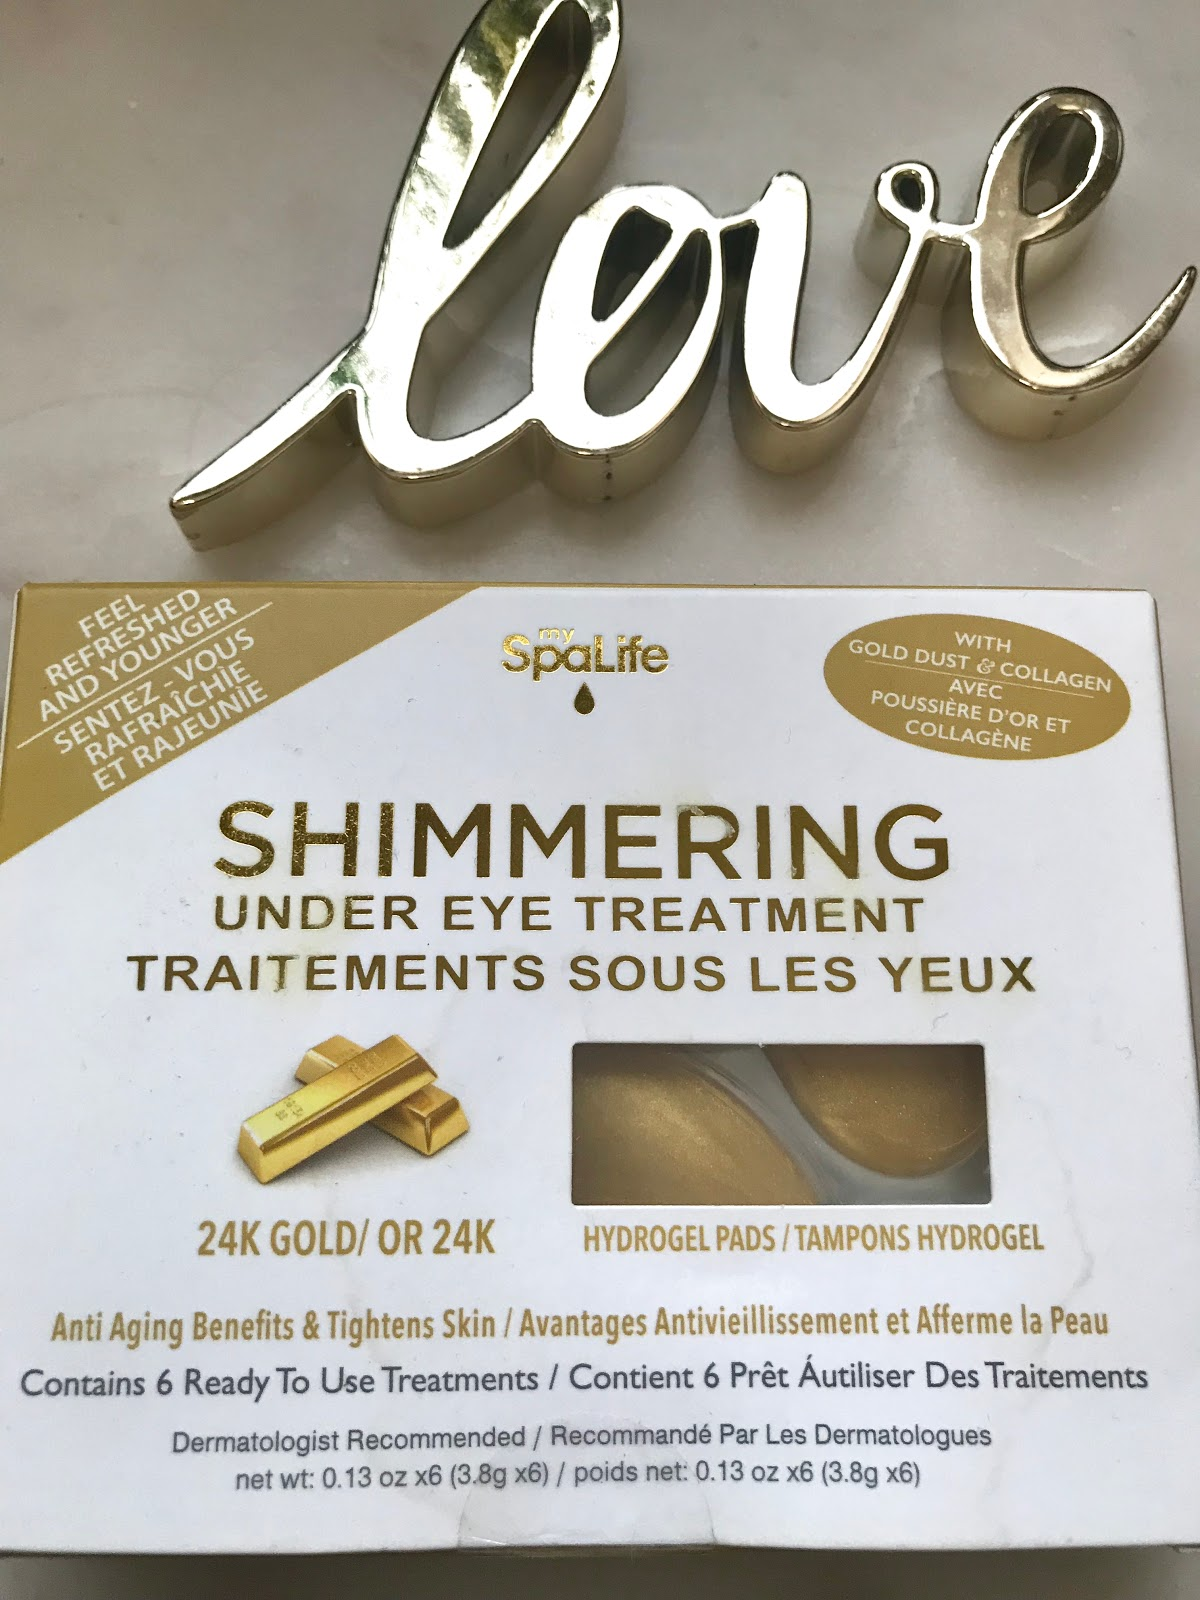 When it comes to dealing with my under eye bags, I love to use under eye treatments. Lately Ive been crushing over Spa Life Gold Shimmers. When I am using those, I grab the cucumber ones for a cooling feeling when my eyes are super tired.